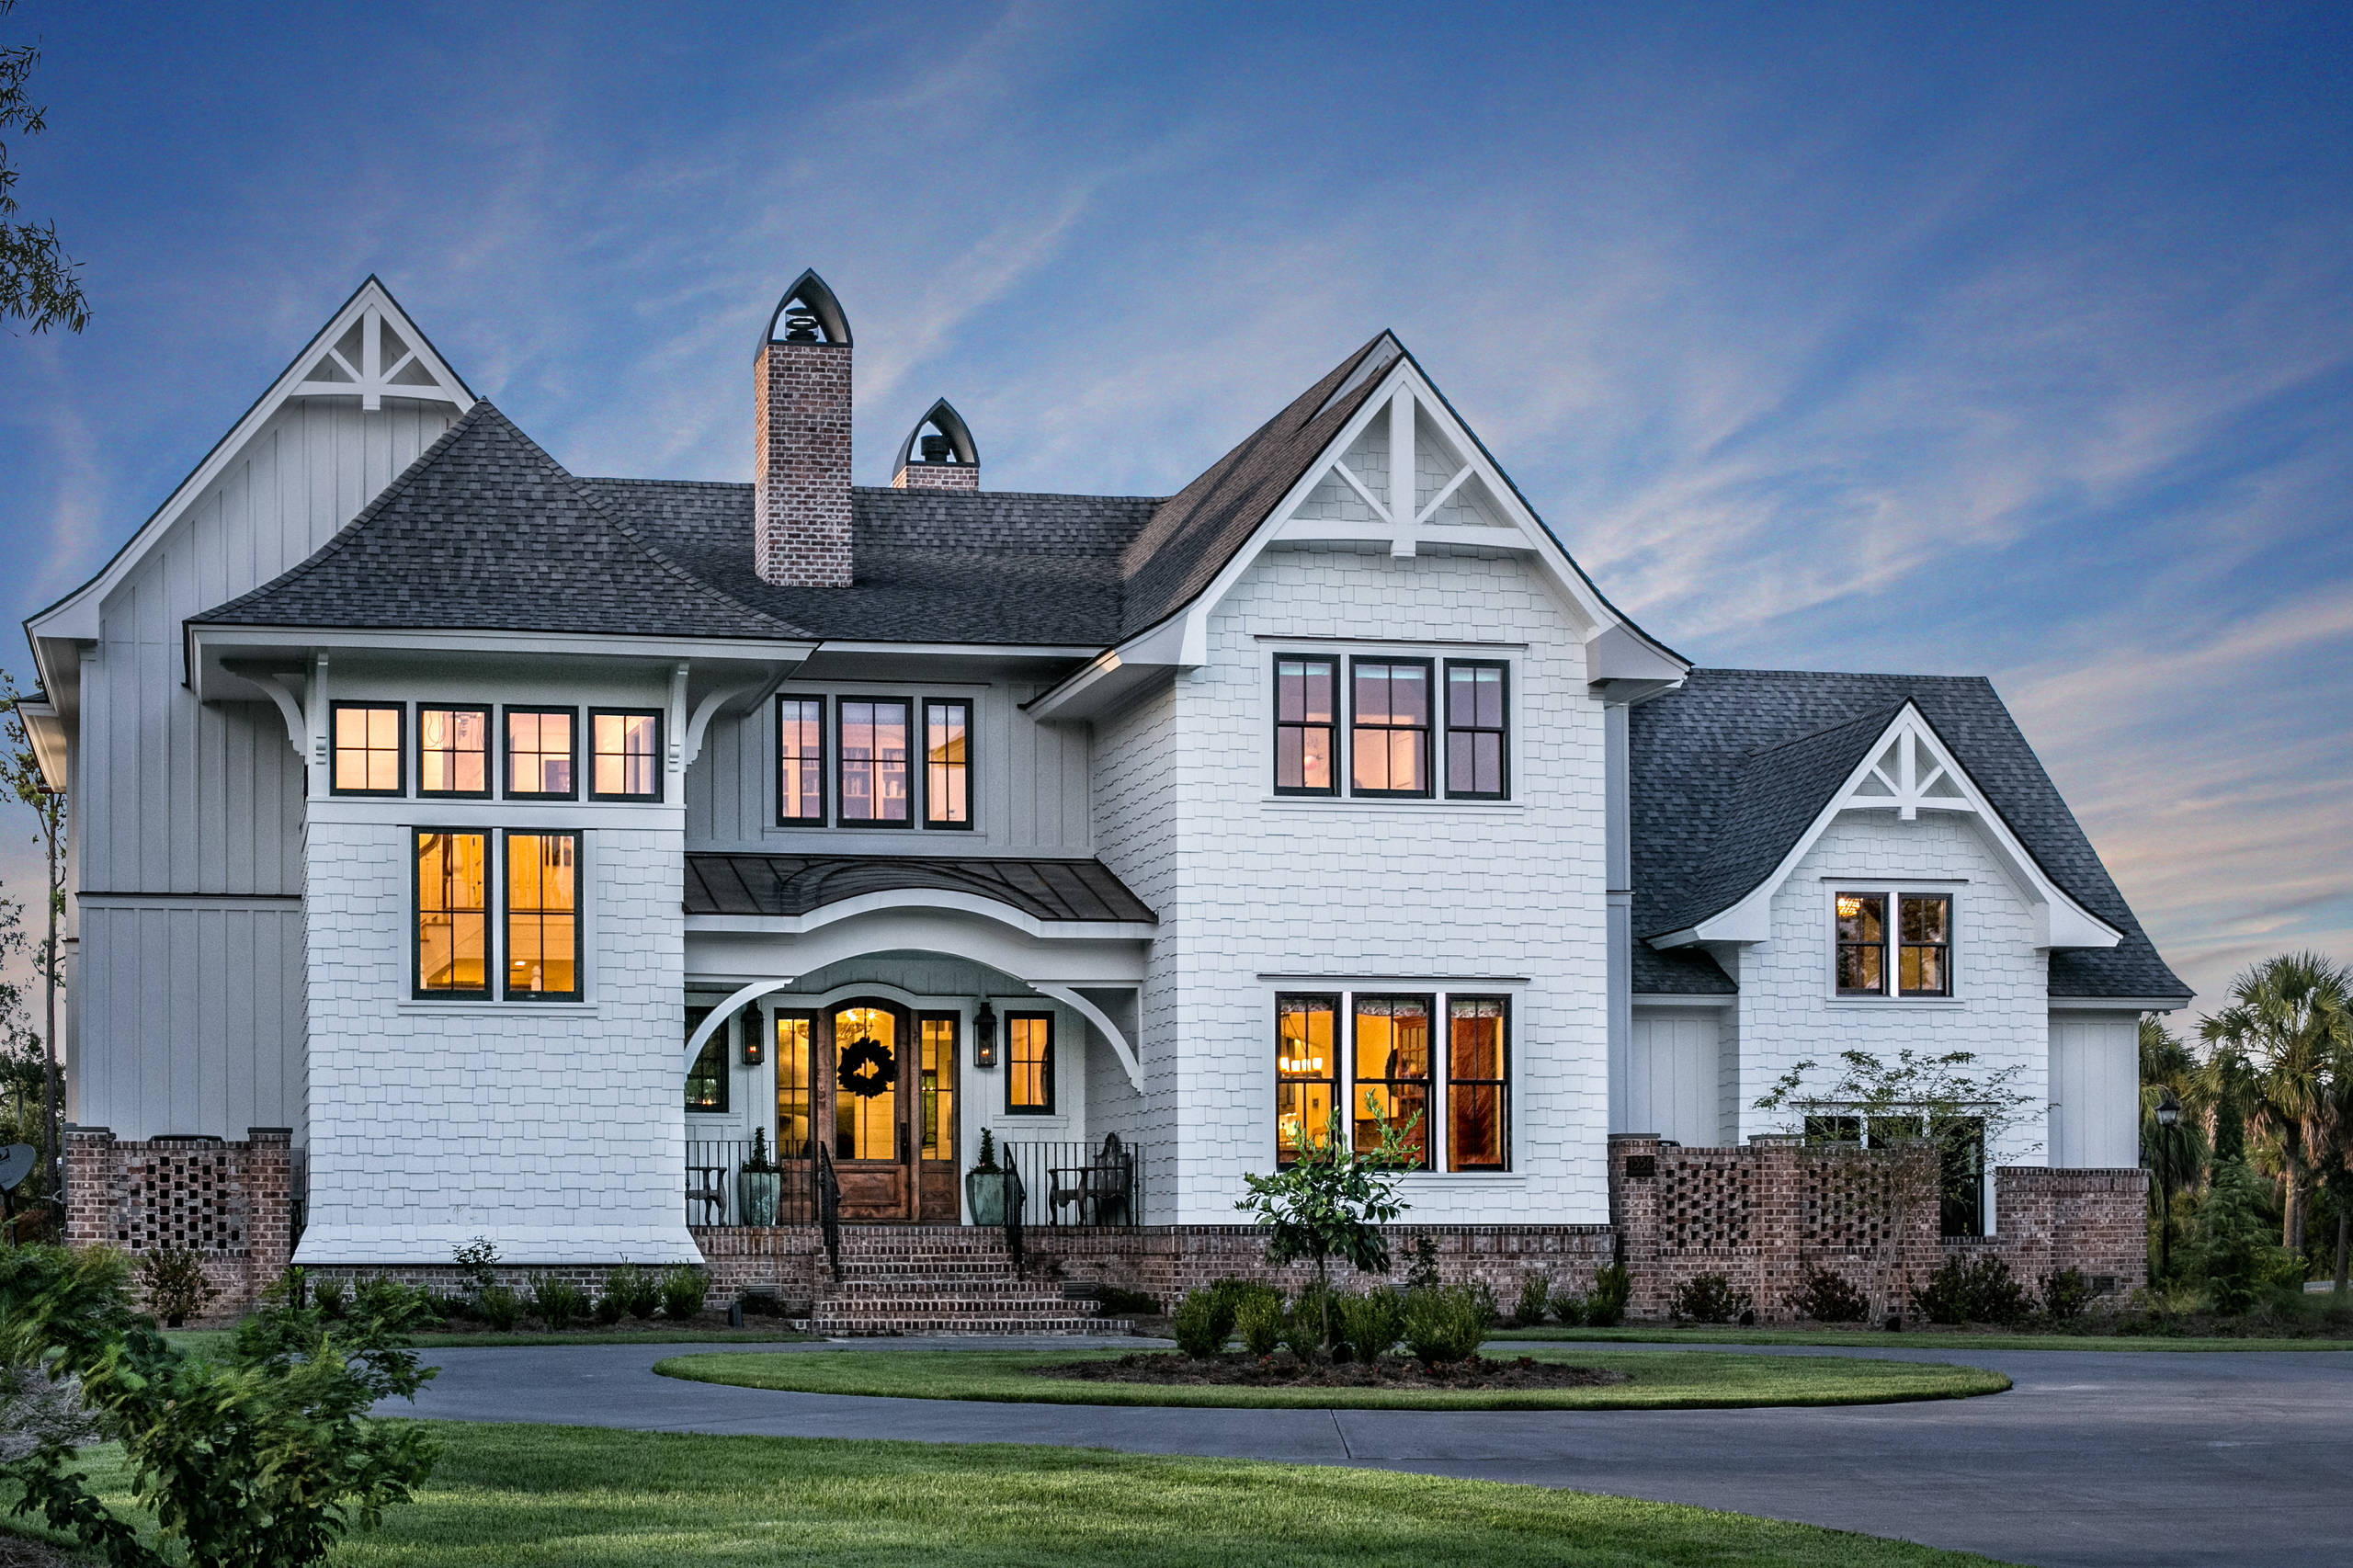 White house black windows Traditional Exterior brick base house white shingle siding